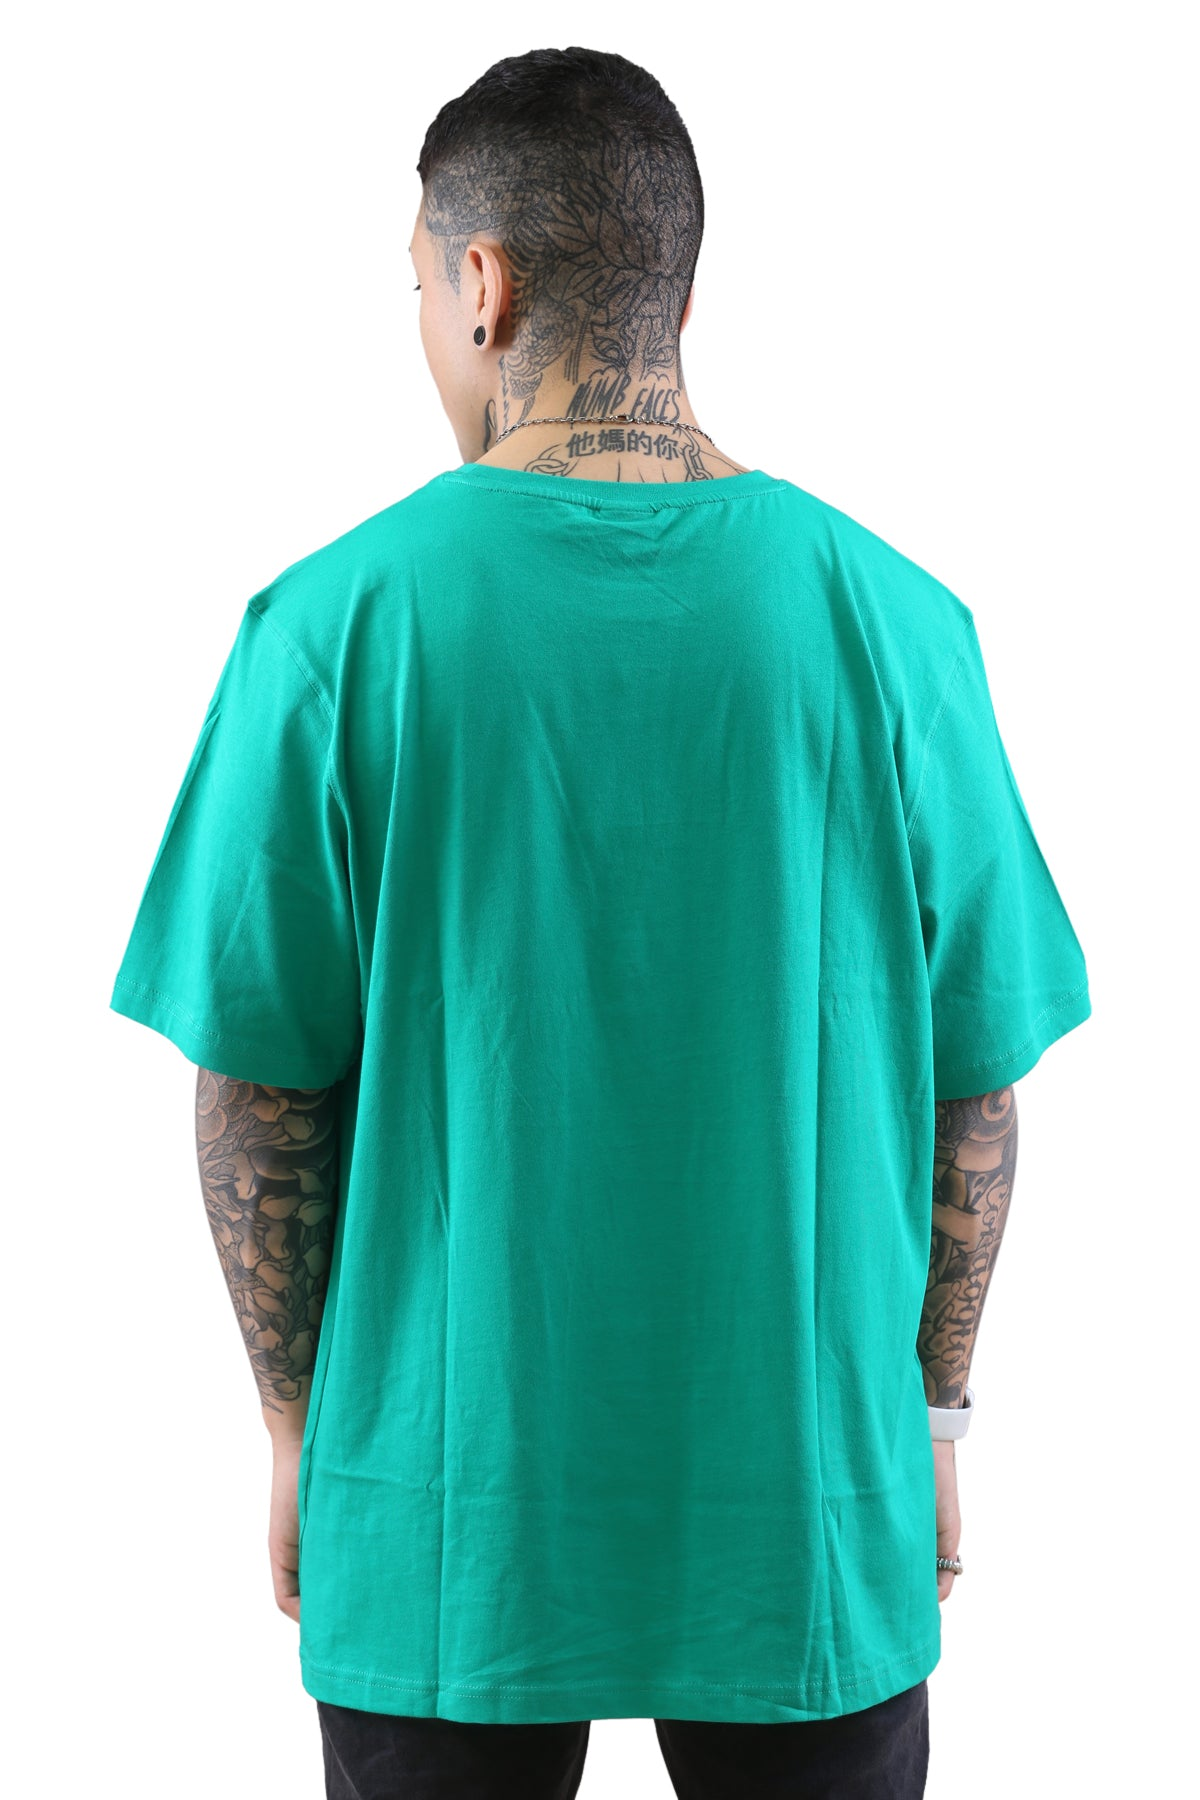 Russell Athletic Arch Logo Crew Tee Emerald